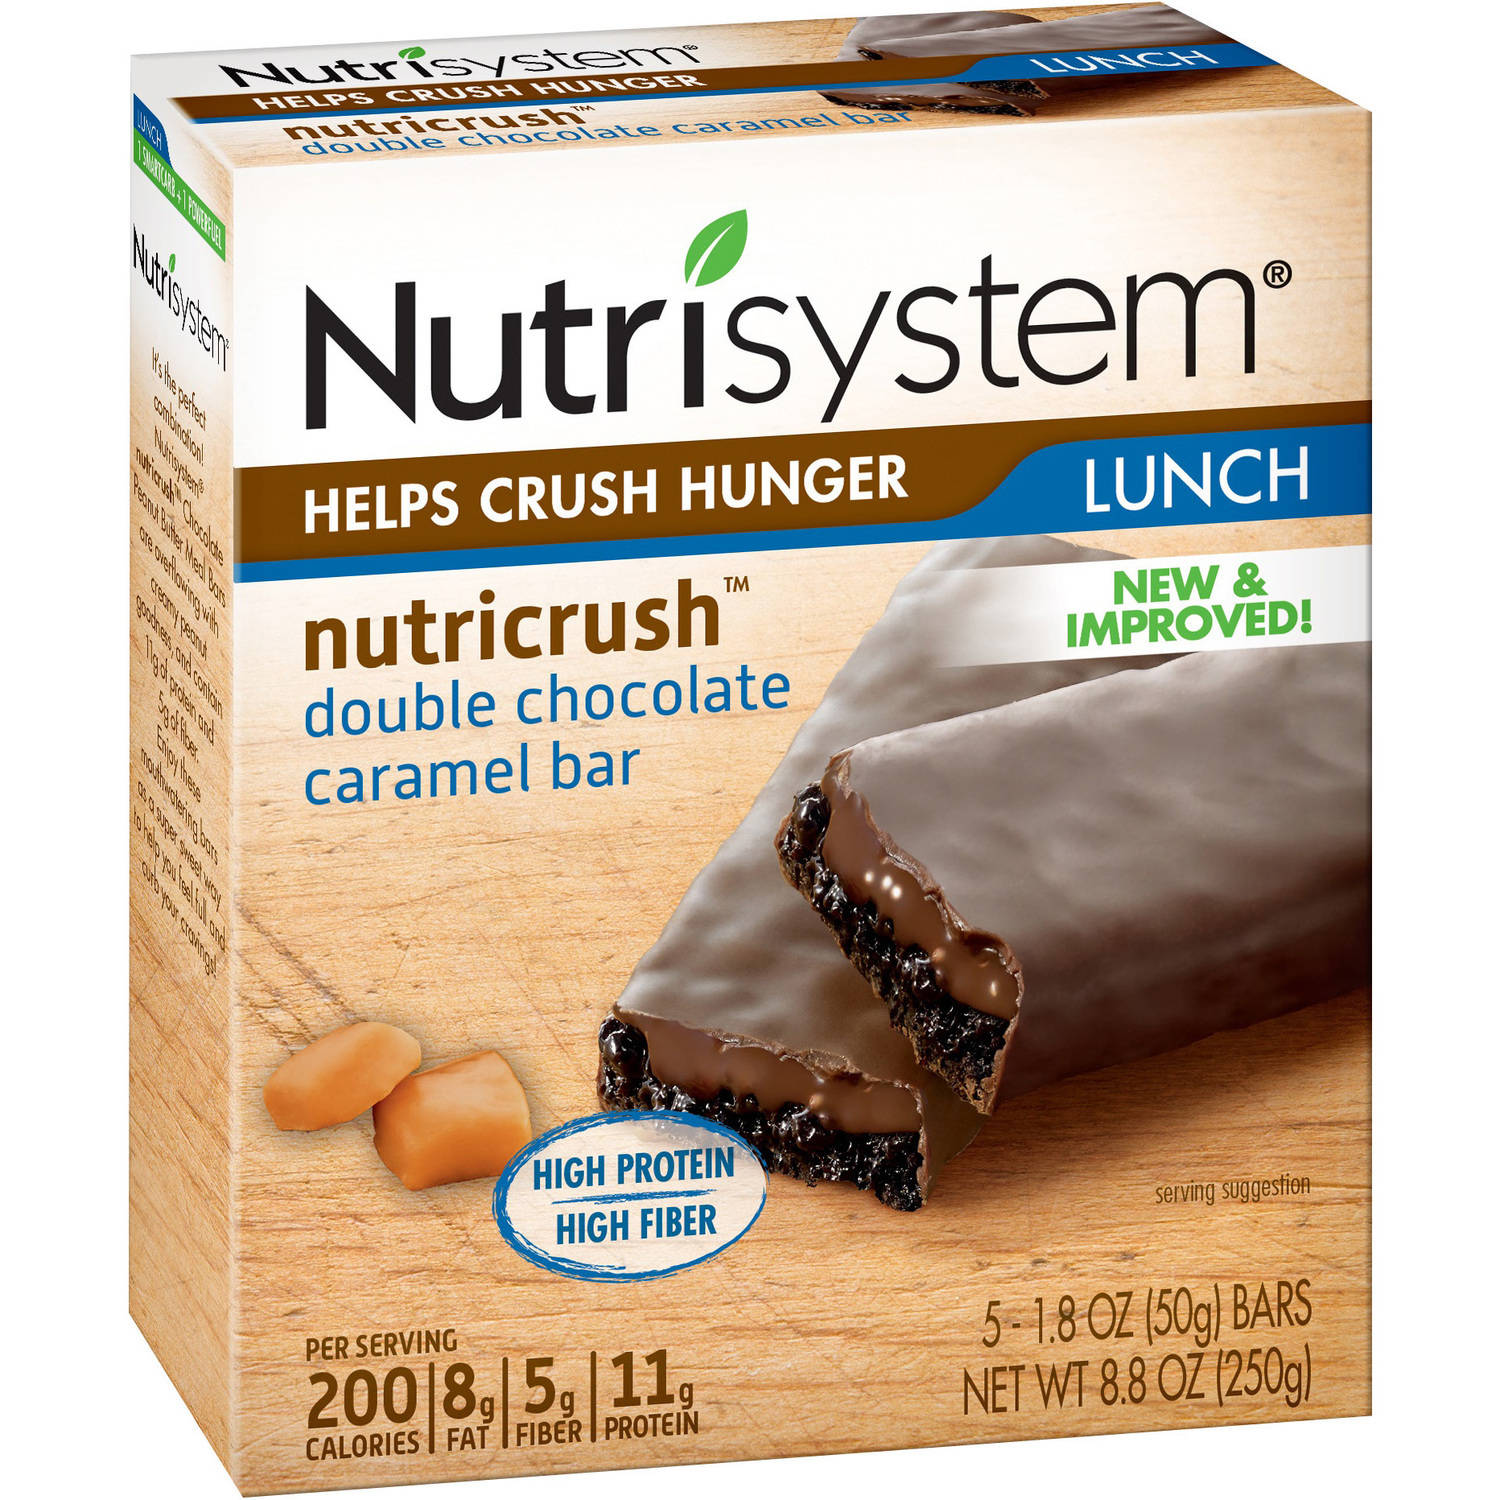 Nutrisystem NutriCRUSH Double Chocolate Caramel Meal Replacement Bars, 1.8 oz, 5 count